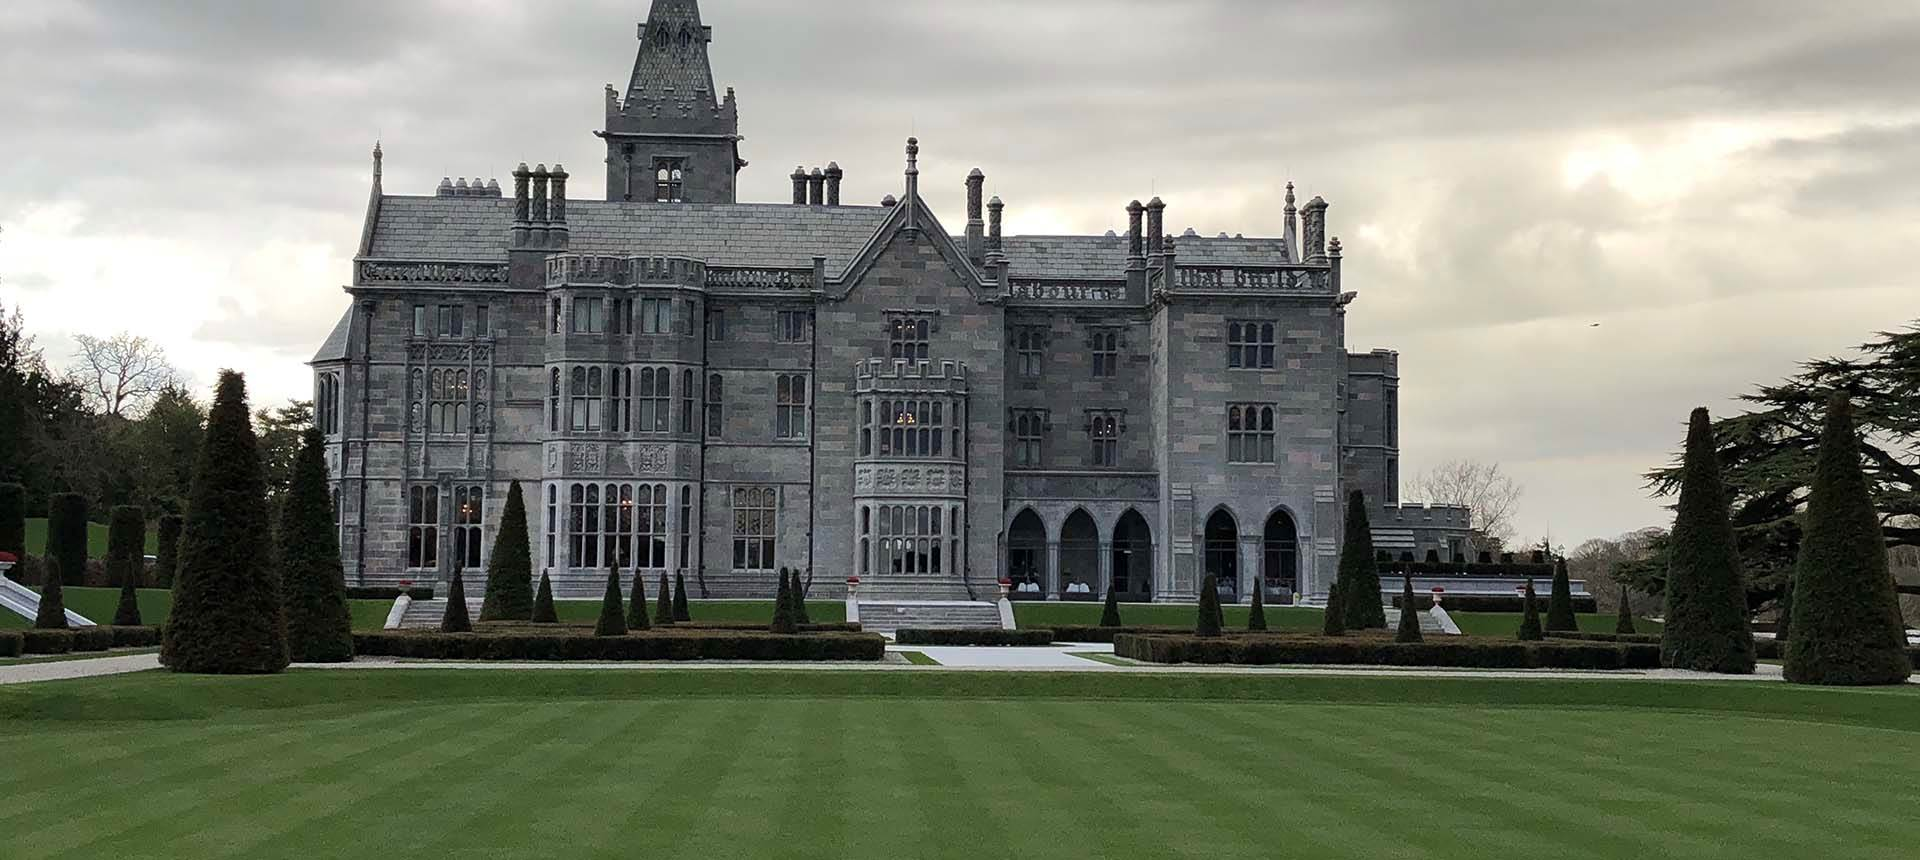 Adare Manor Hotel & Golf Resort in Limerick